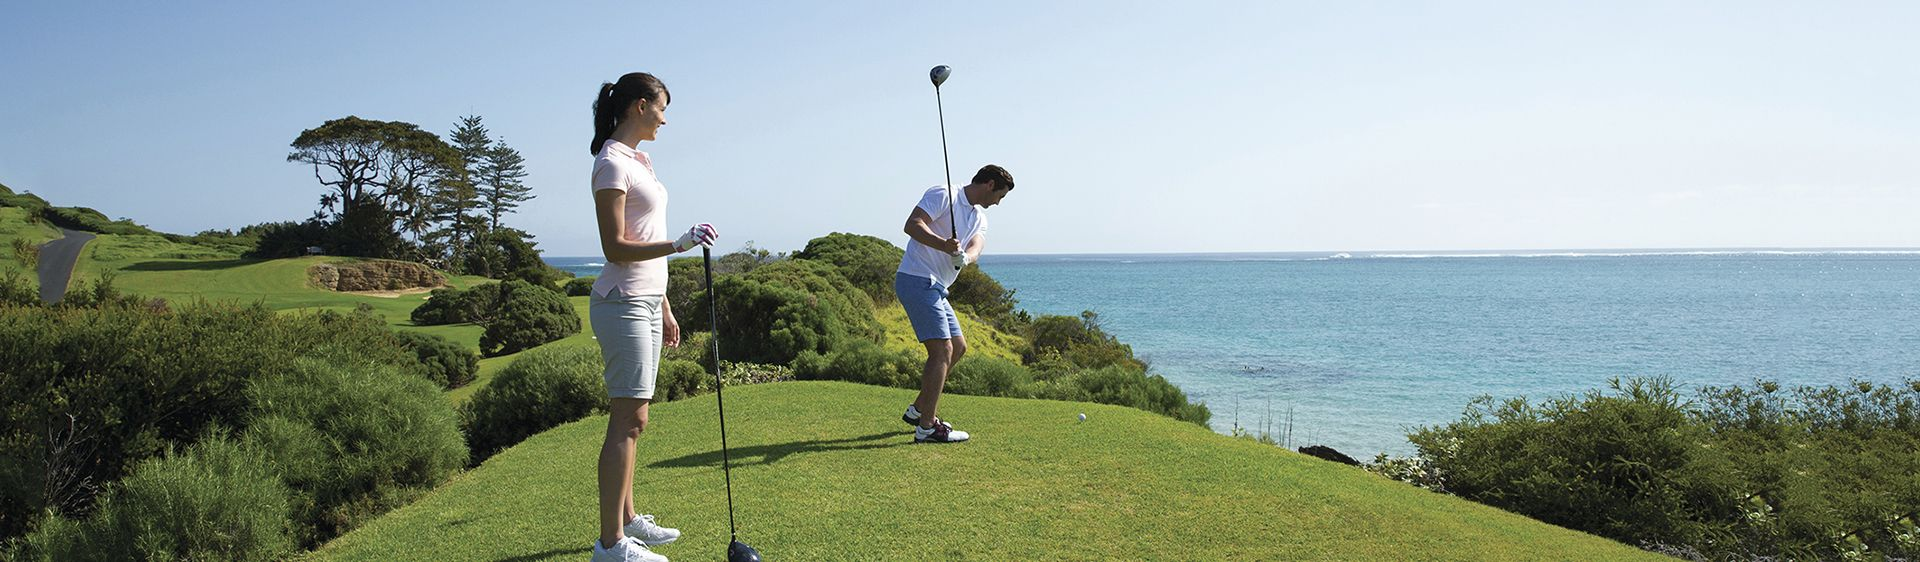 Couple enjoying a round of golf at Lord Howe Island Golf Course, with ocean views